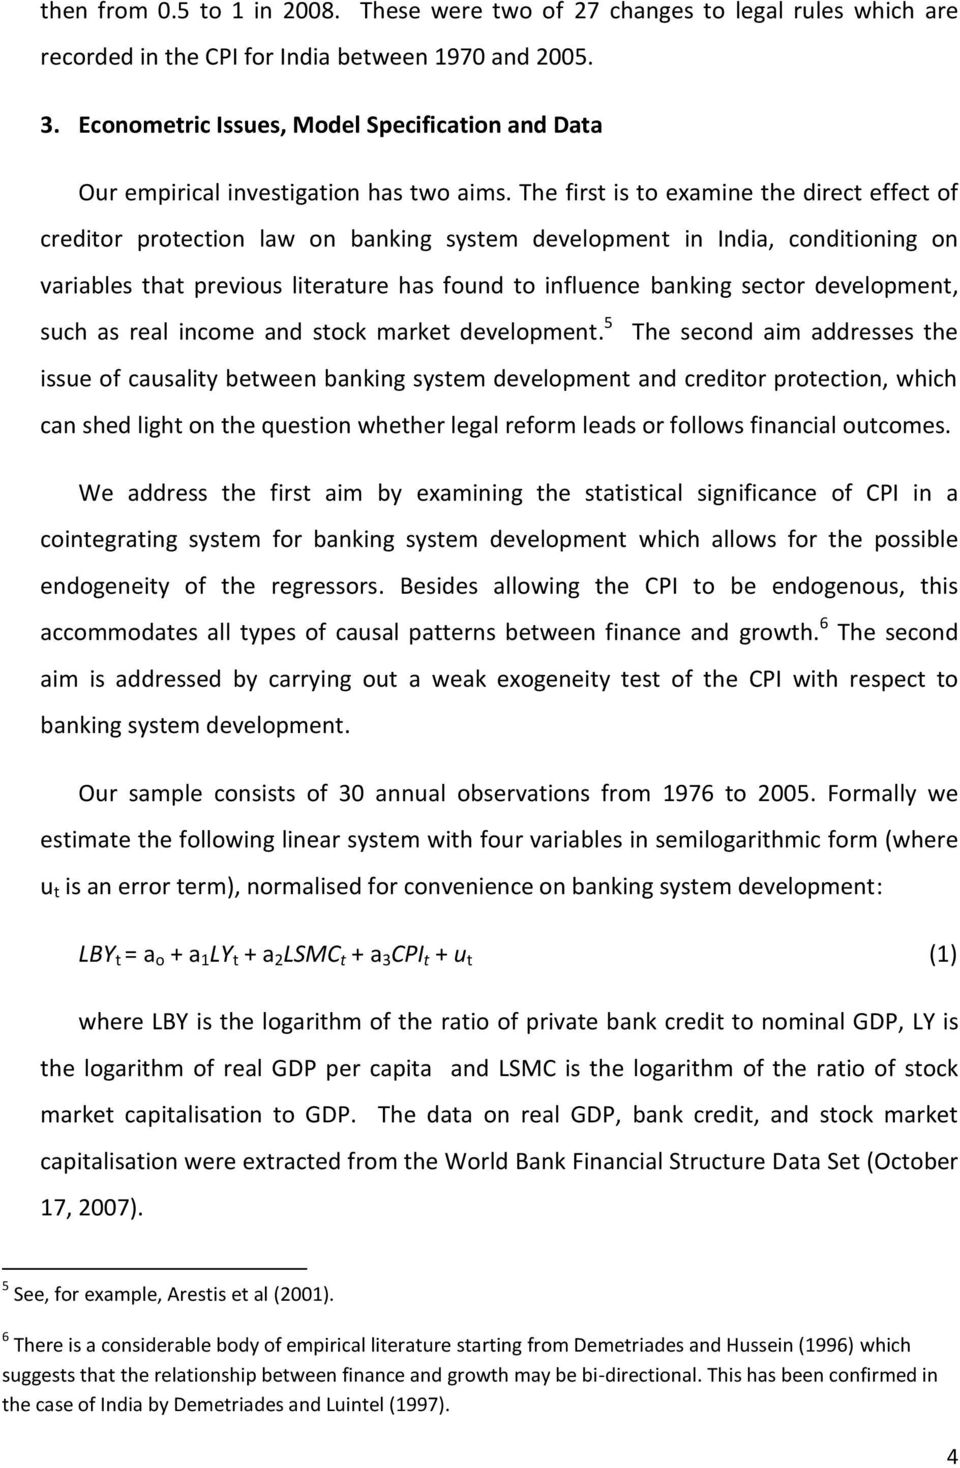 The first is to examine the direct effect of creditor protection law on banking system development in India, conditioning on variables that previous literature has found to influence banking sector